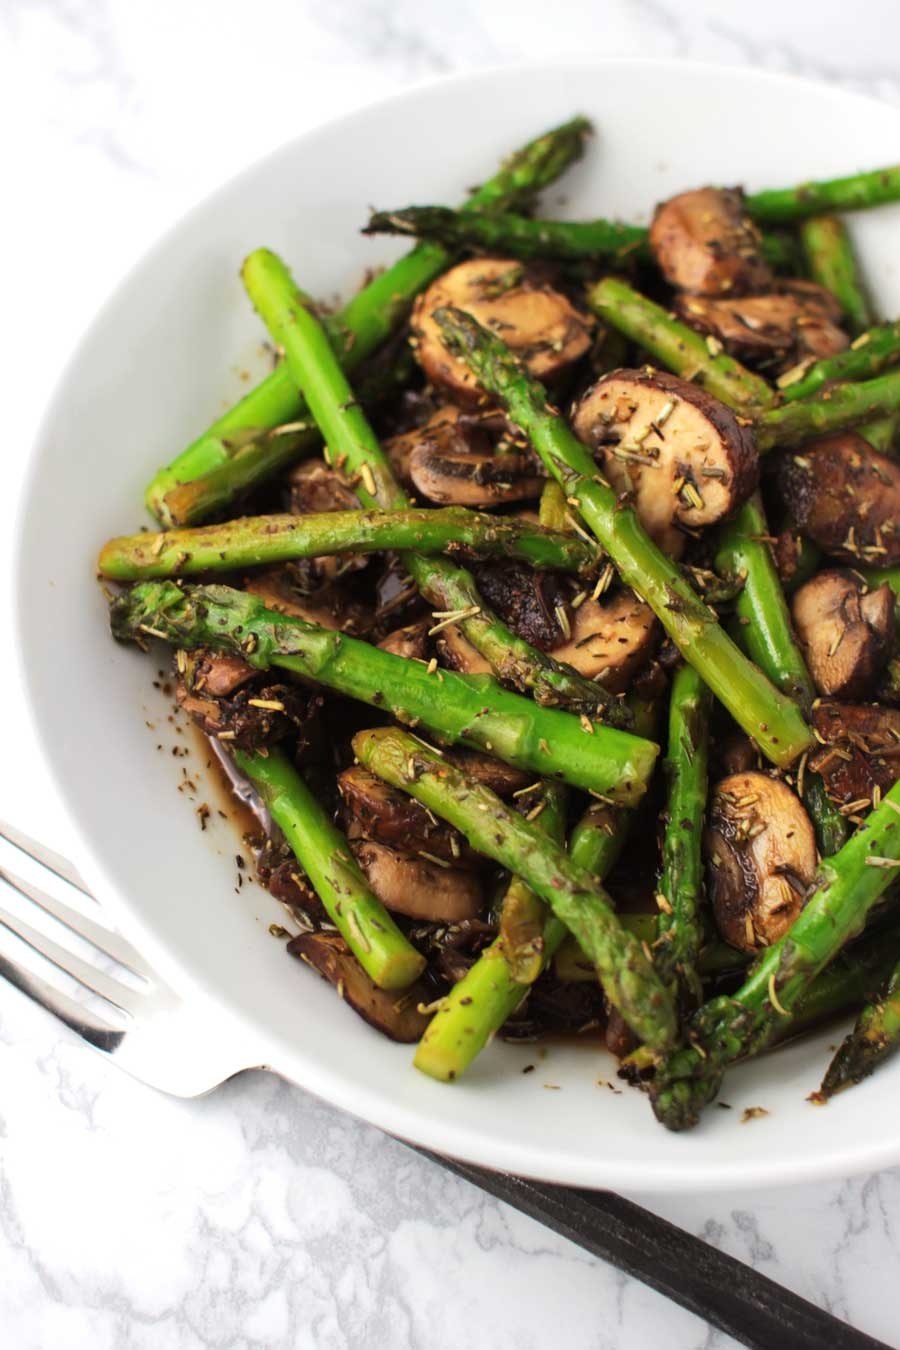 Sweet and Sour Asparagus Stir-Fry recipe from acleanplate.com #paleo #aip #glutenfree